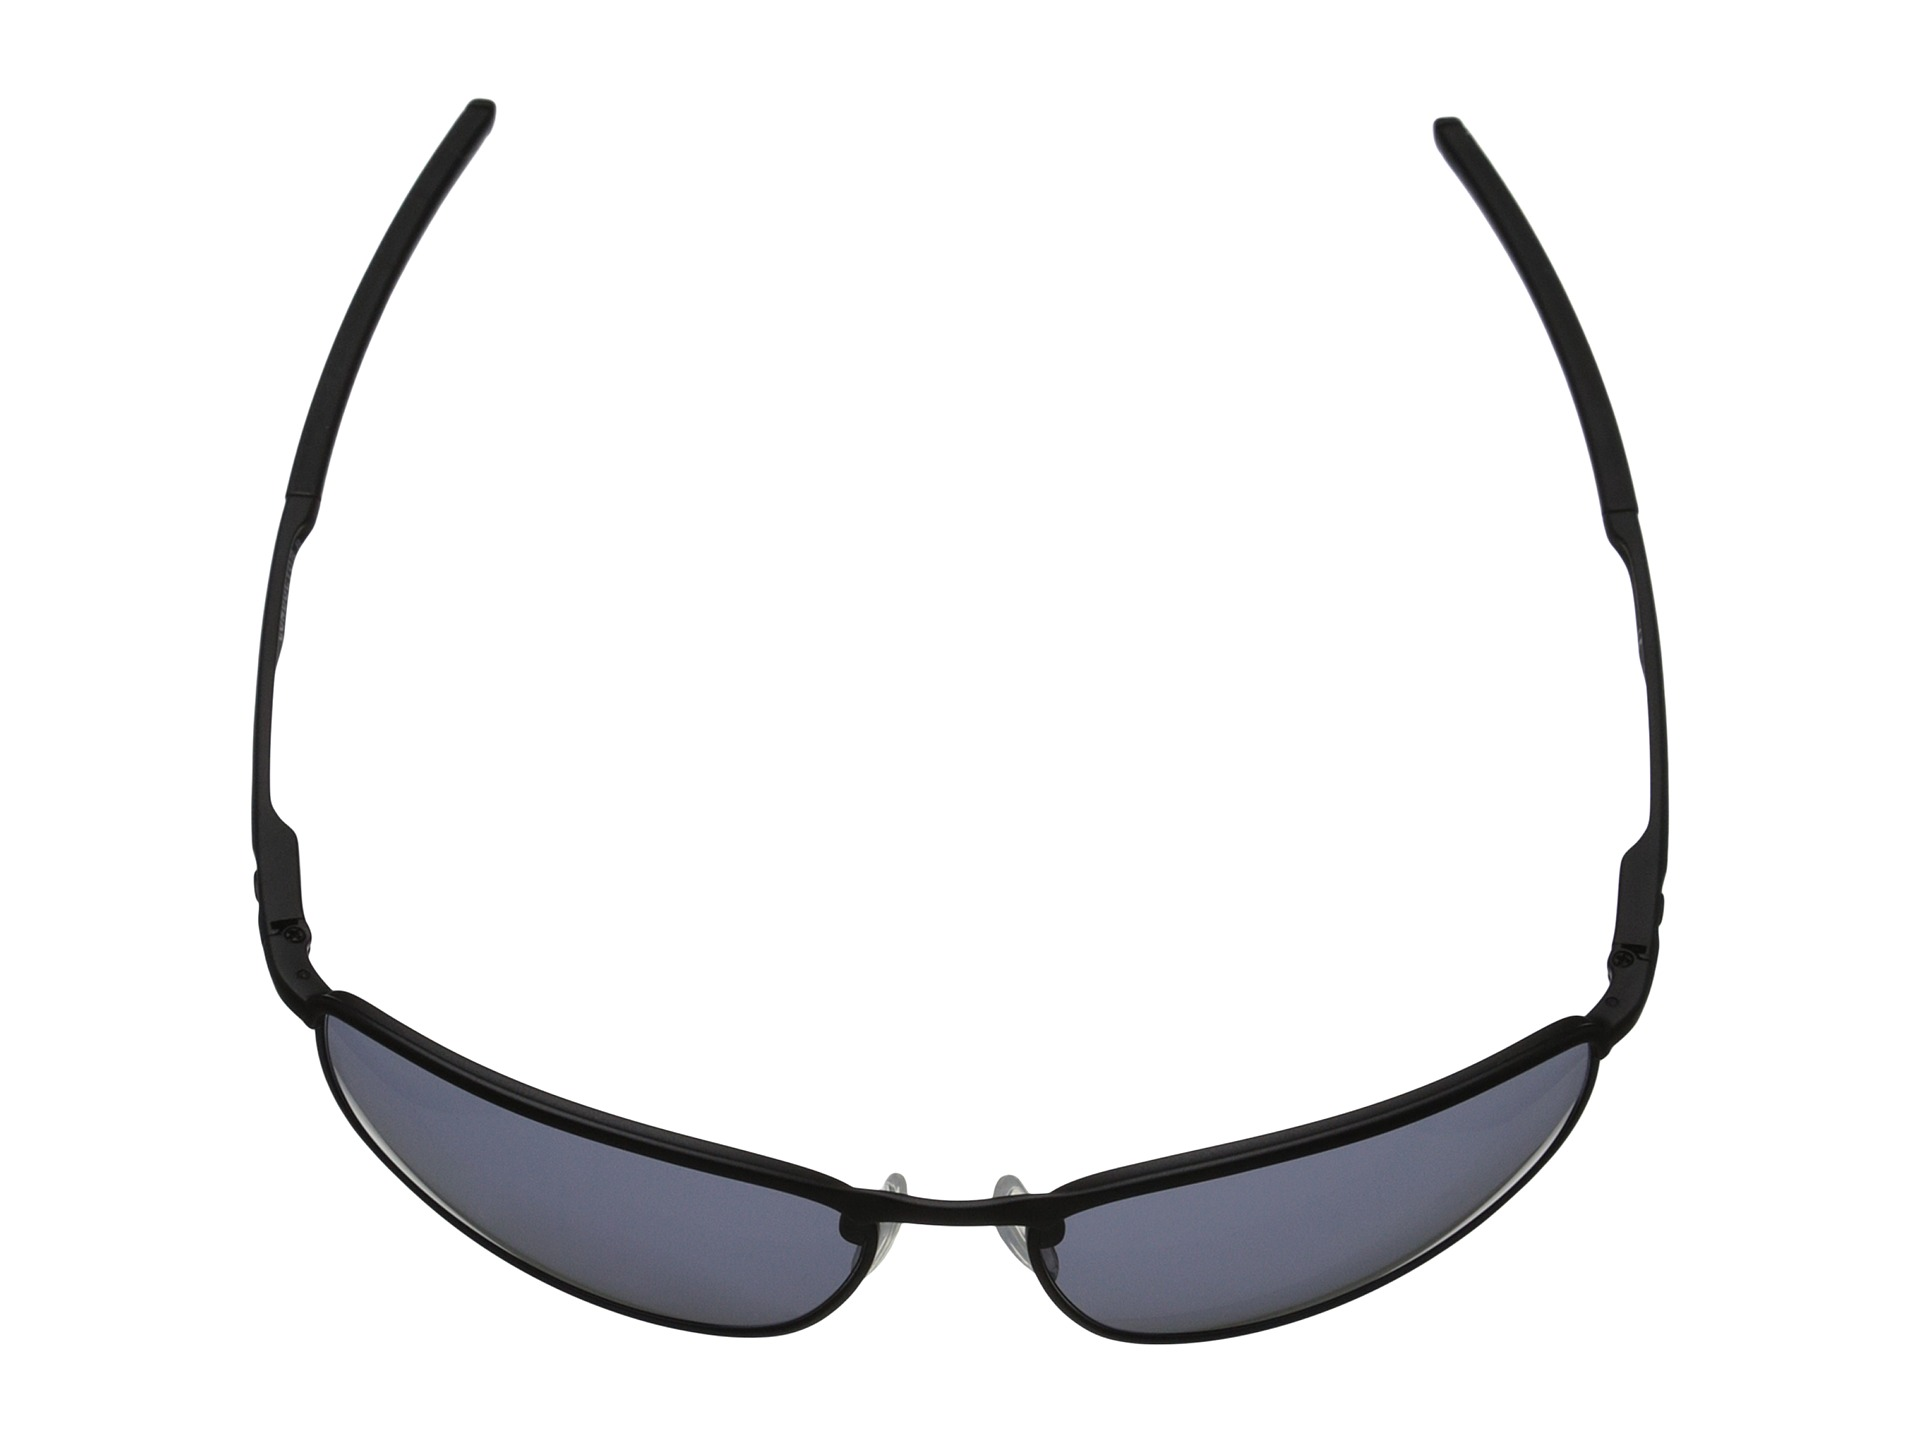 oakley why 8  Oakley Conductor 8 Matte Black W/Grey - Zappos.com Free Shipping ...